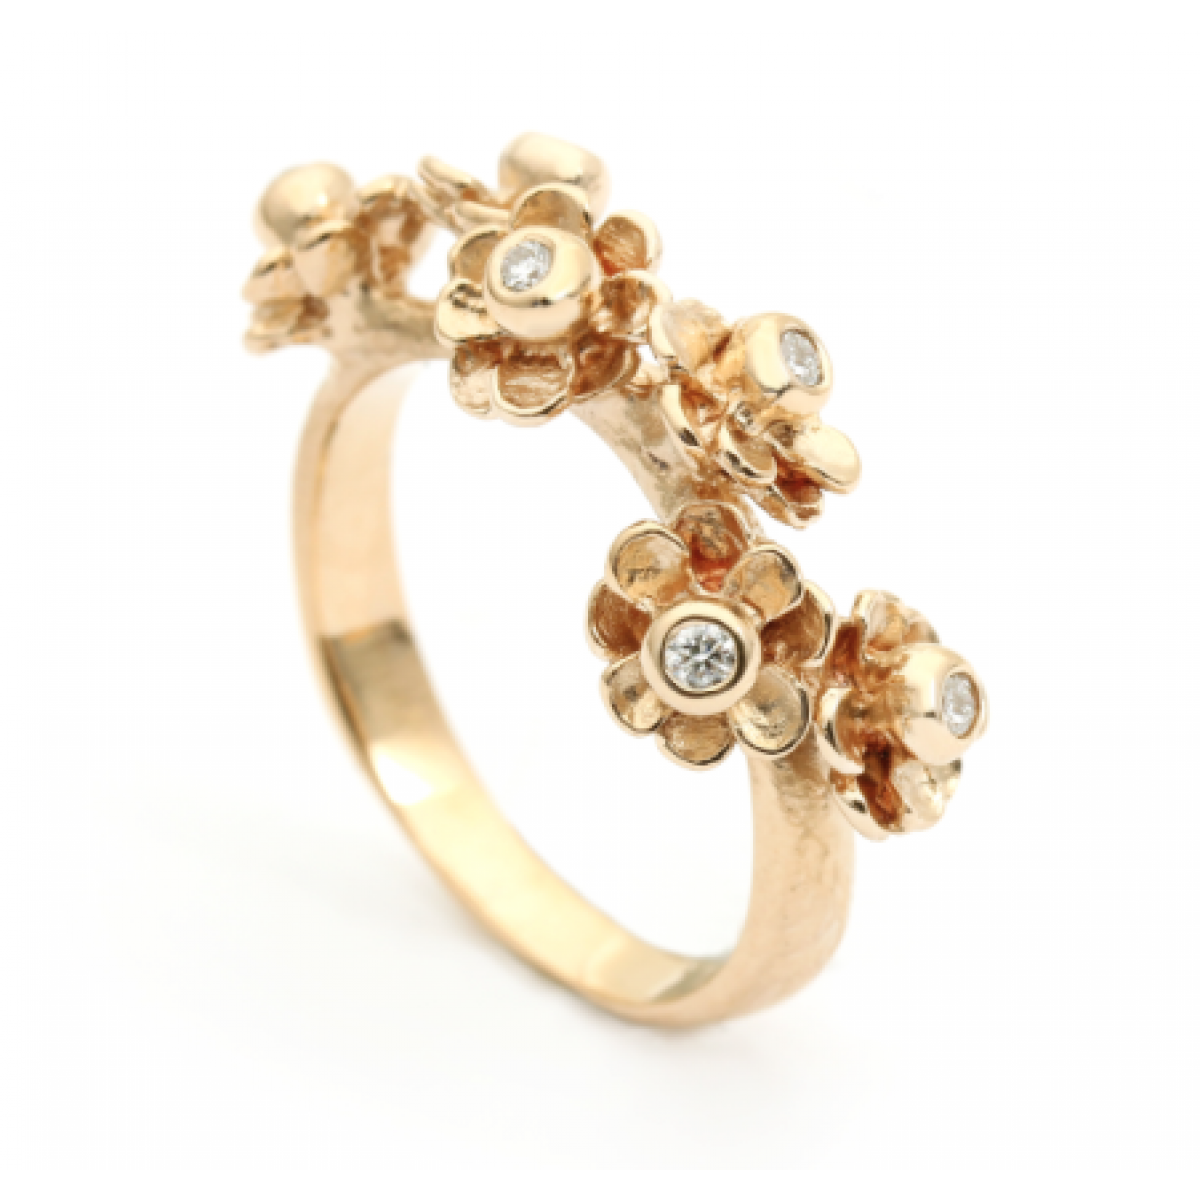 Per Borup HAPPY FLOWER ring 972RY 14 karat guld-3